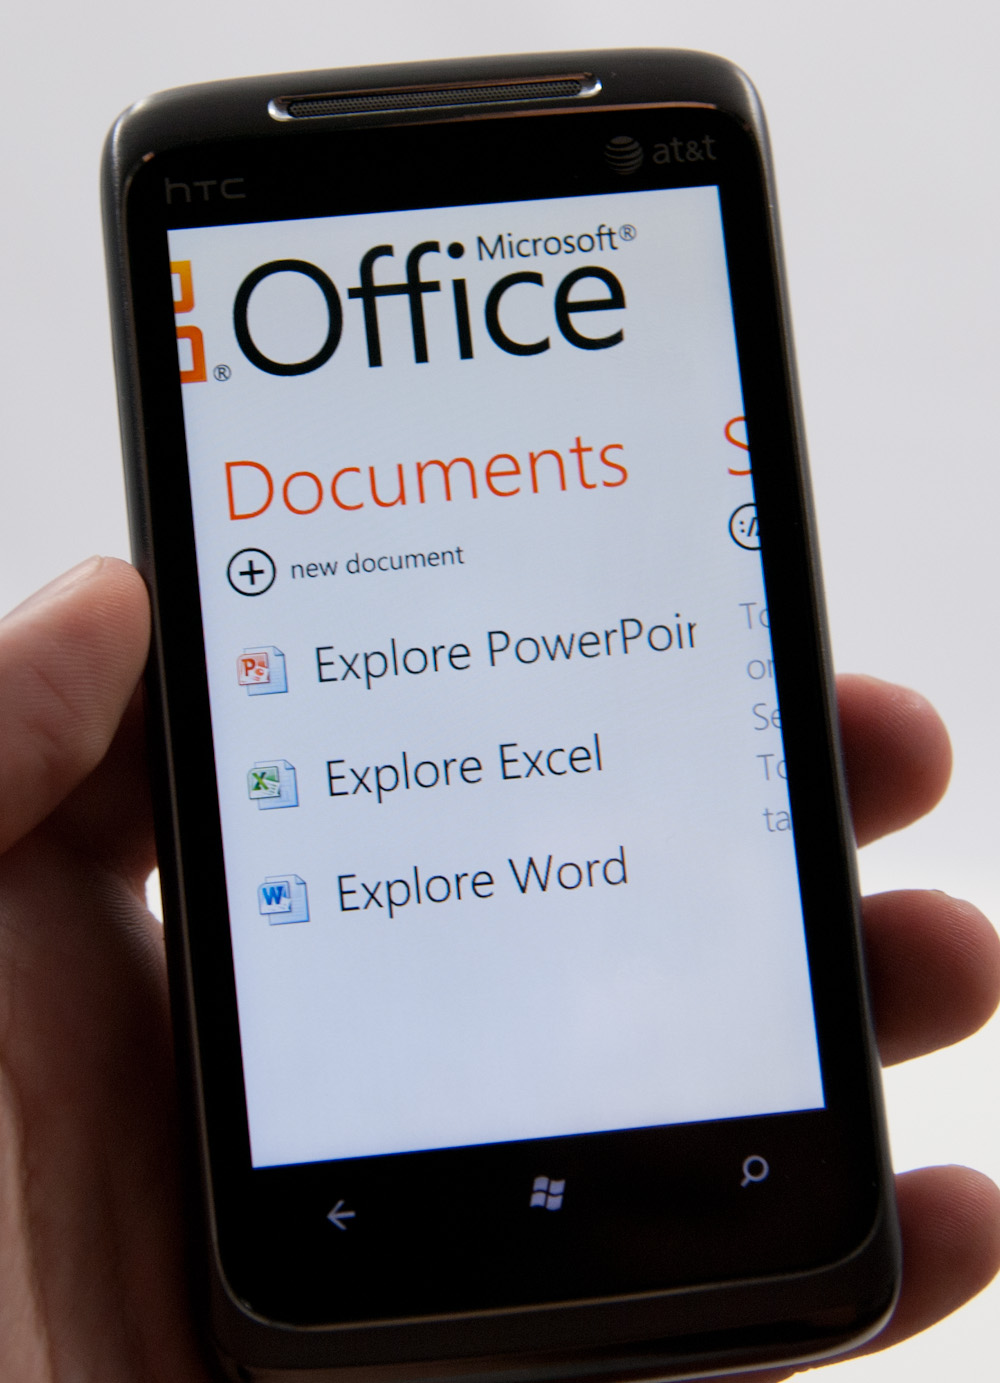 Microsoft Office for Windows Phone 7 - The Windows Phone 7